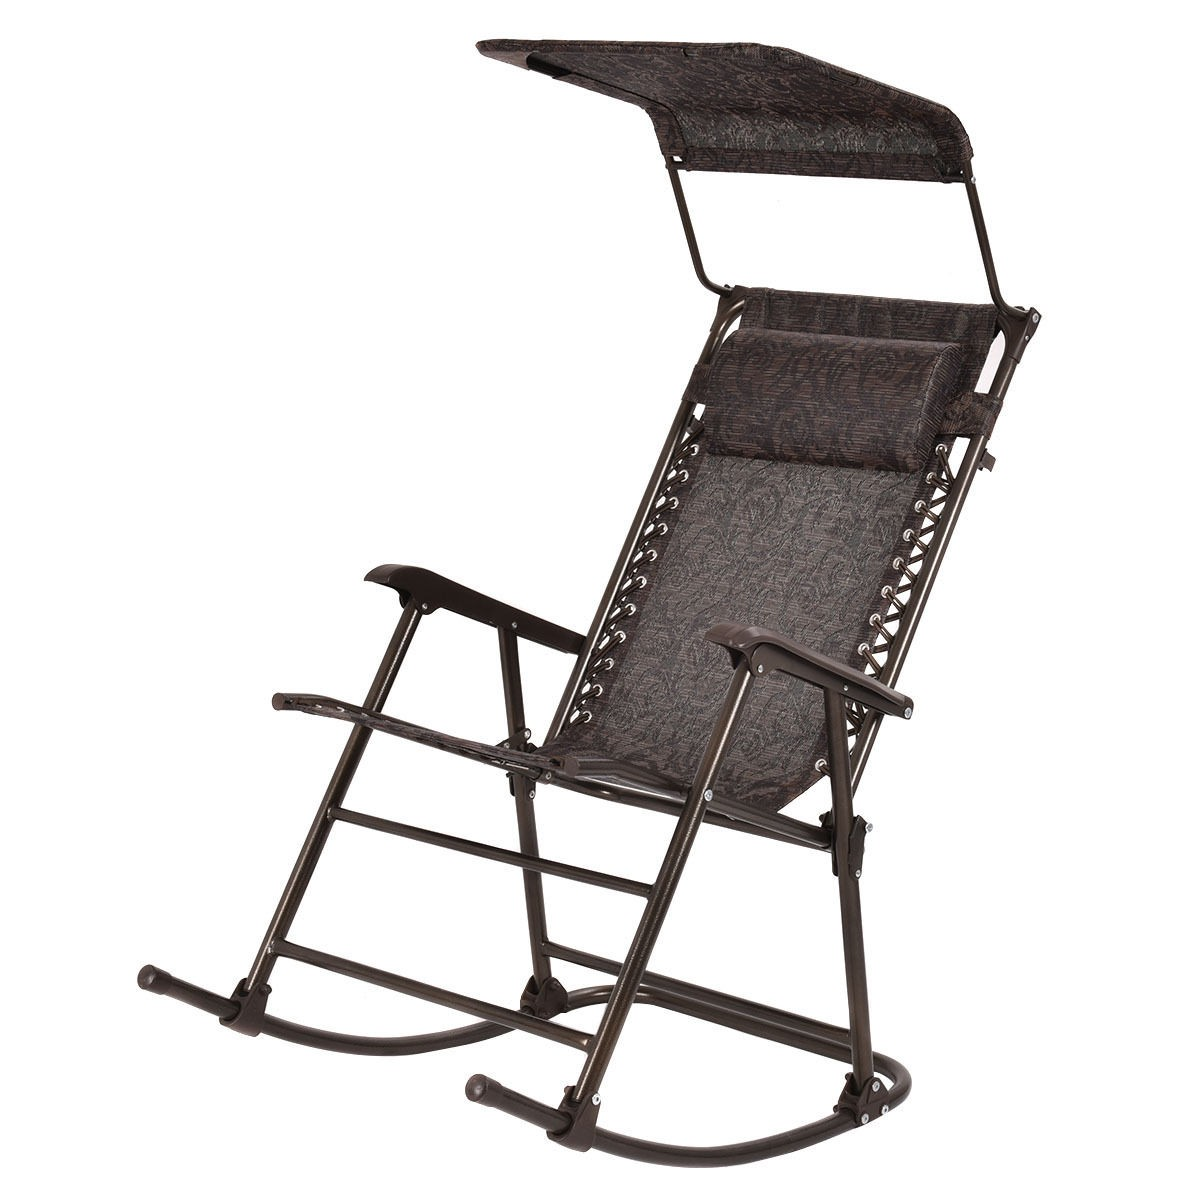 Outdoor Home Daddy Folding Rocking Chair Rocker Patio Furniture Canopy Headre